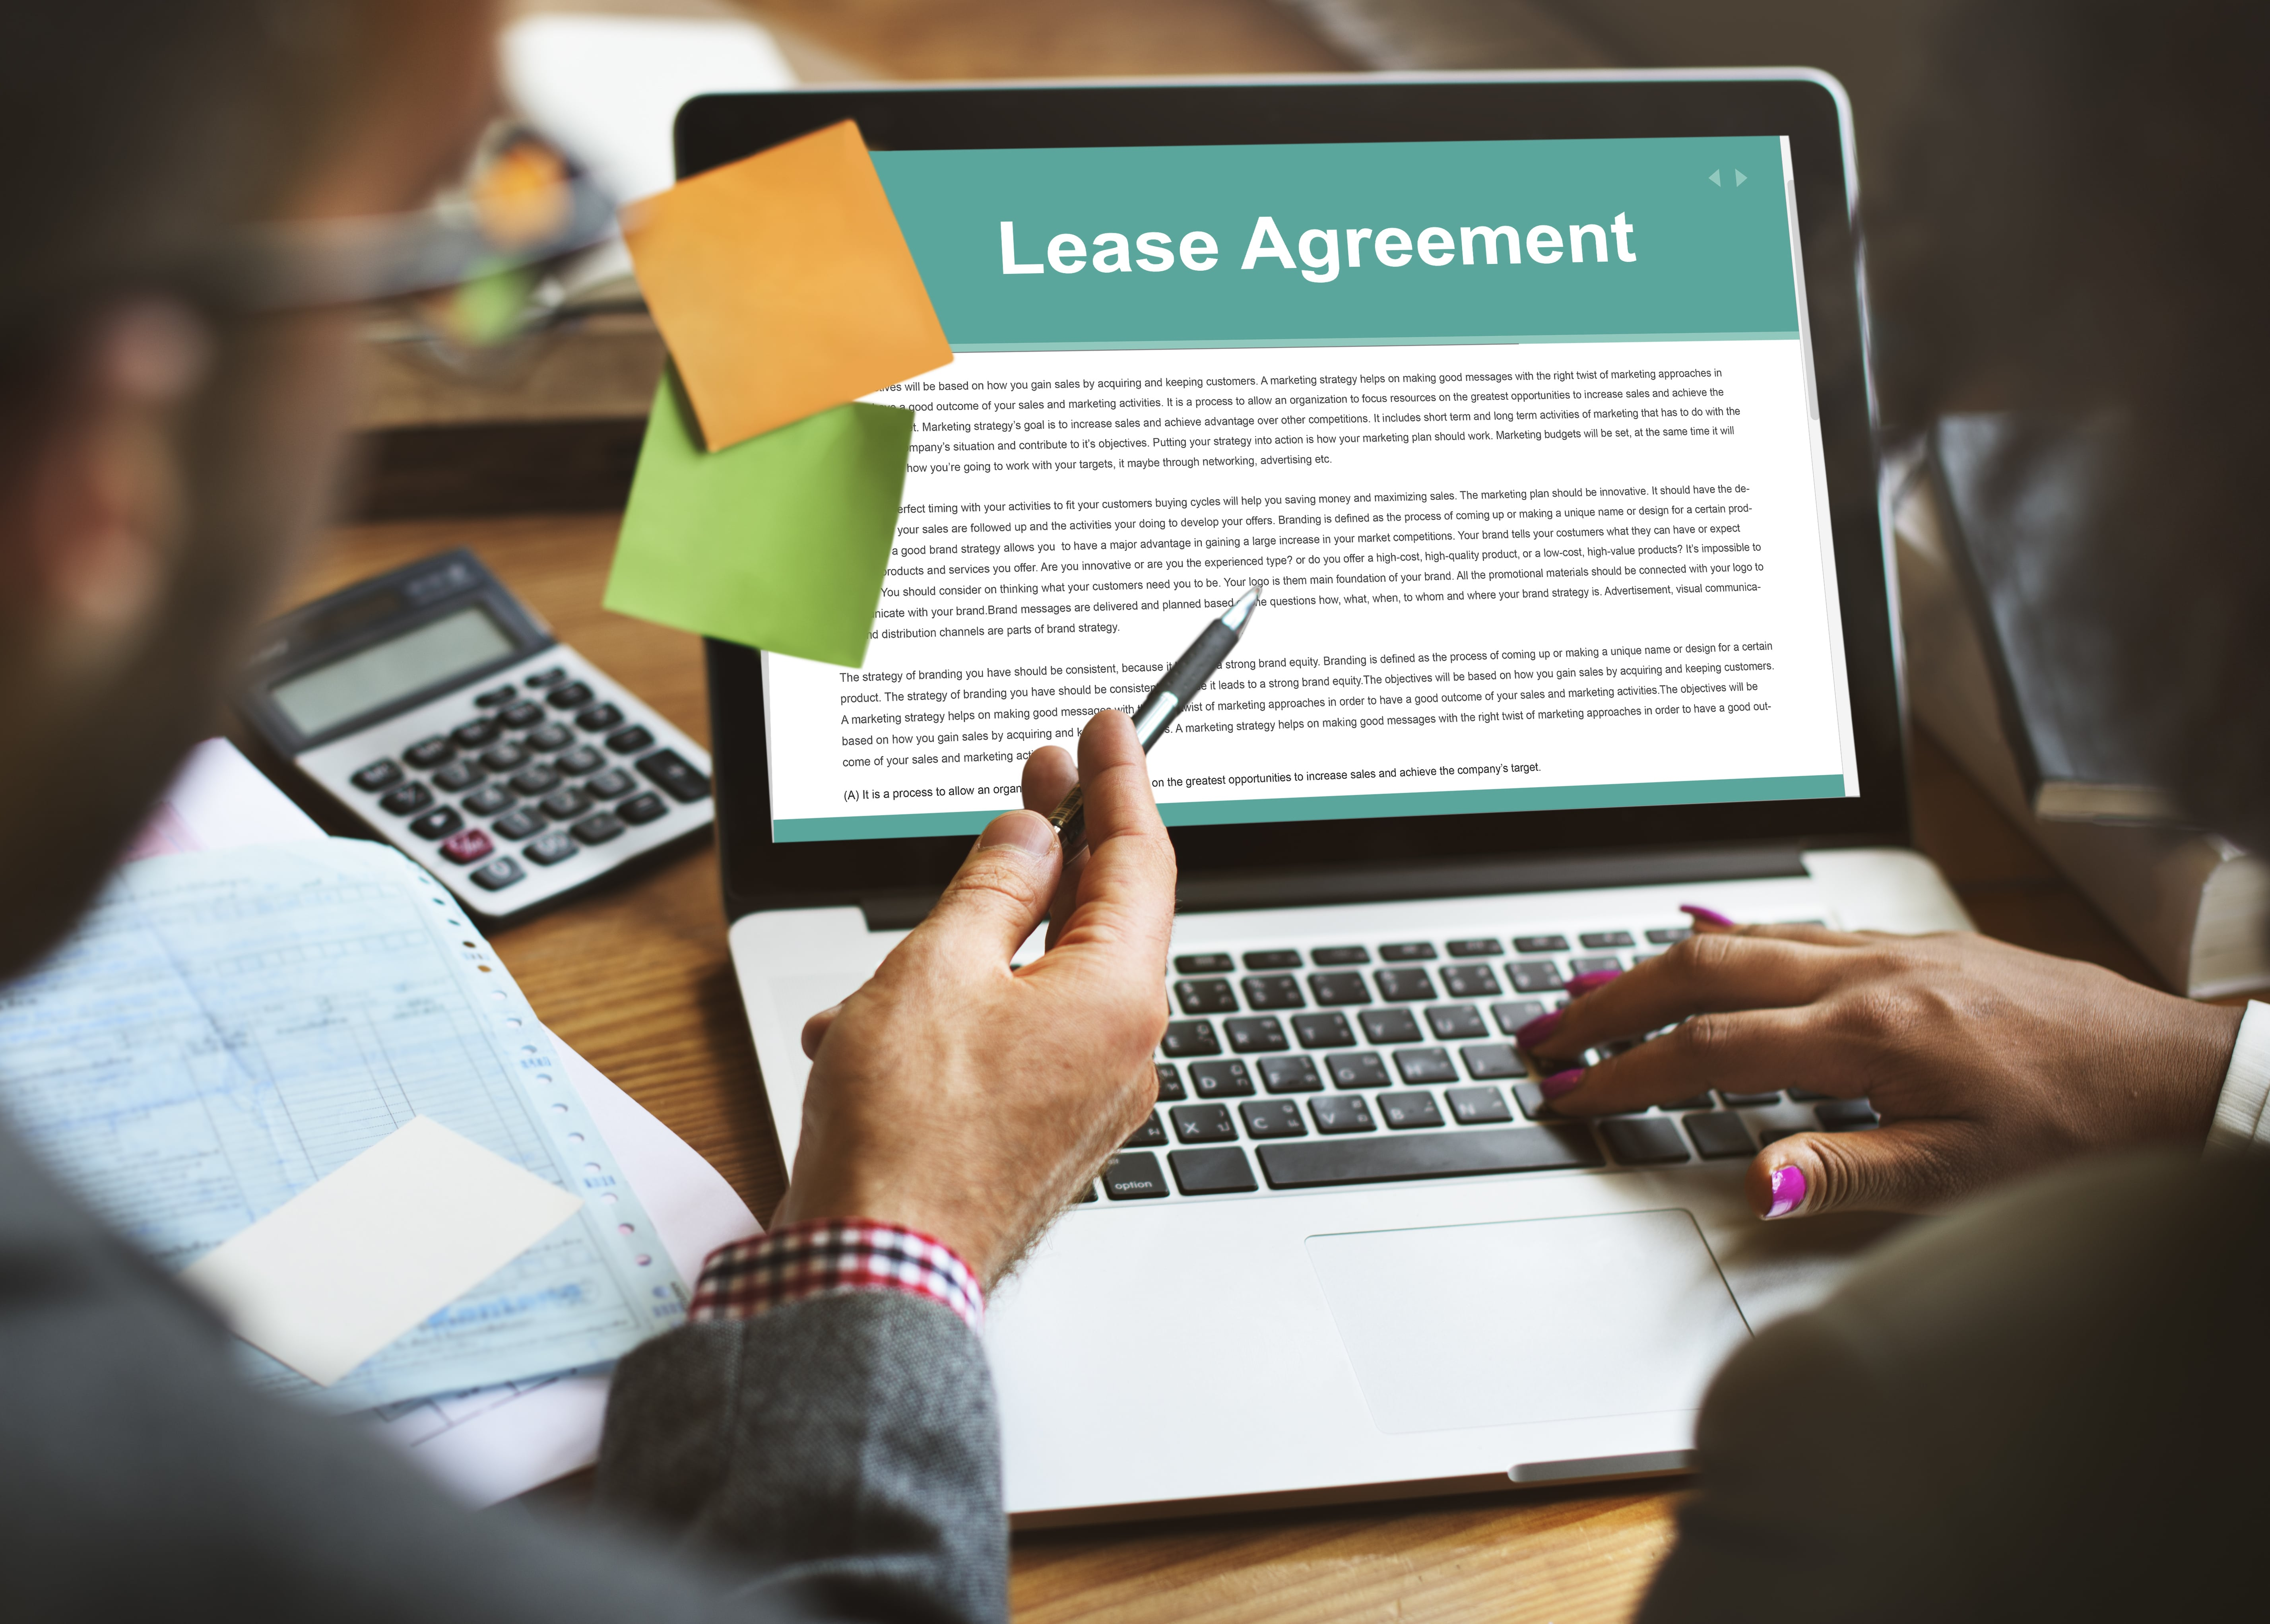 6 Things Landlords Should Know About Tenant Screening